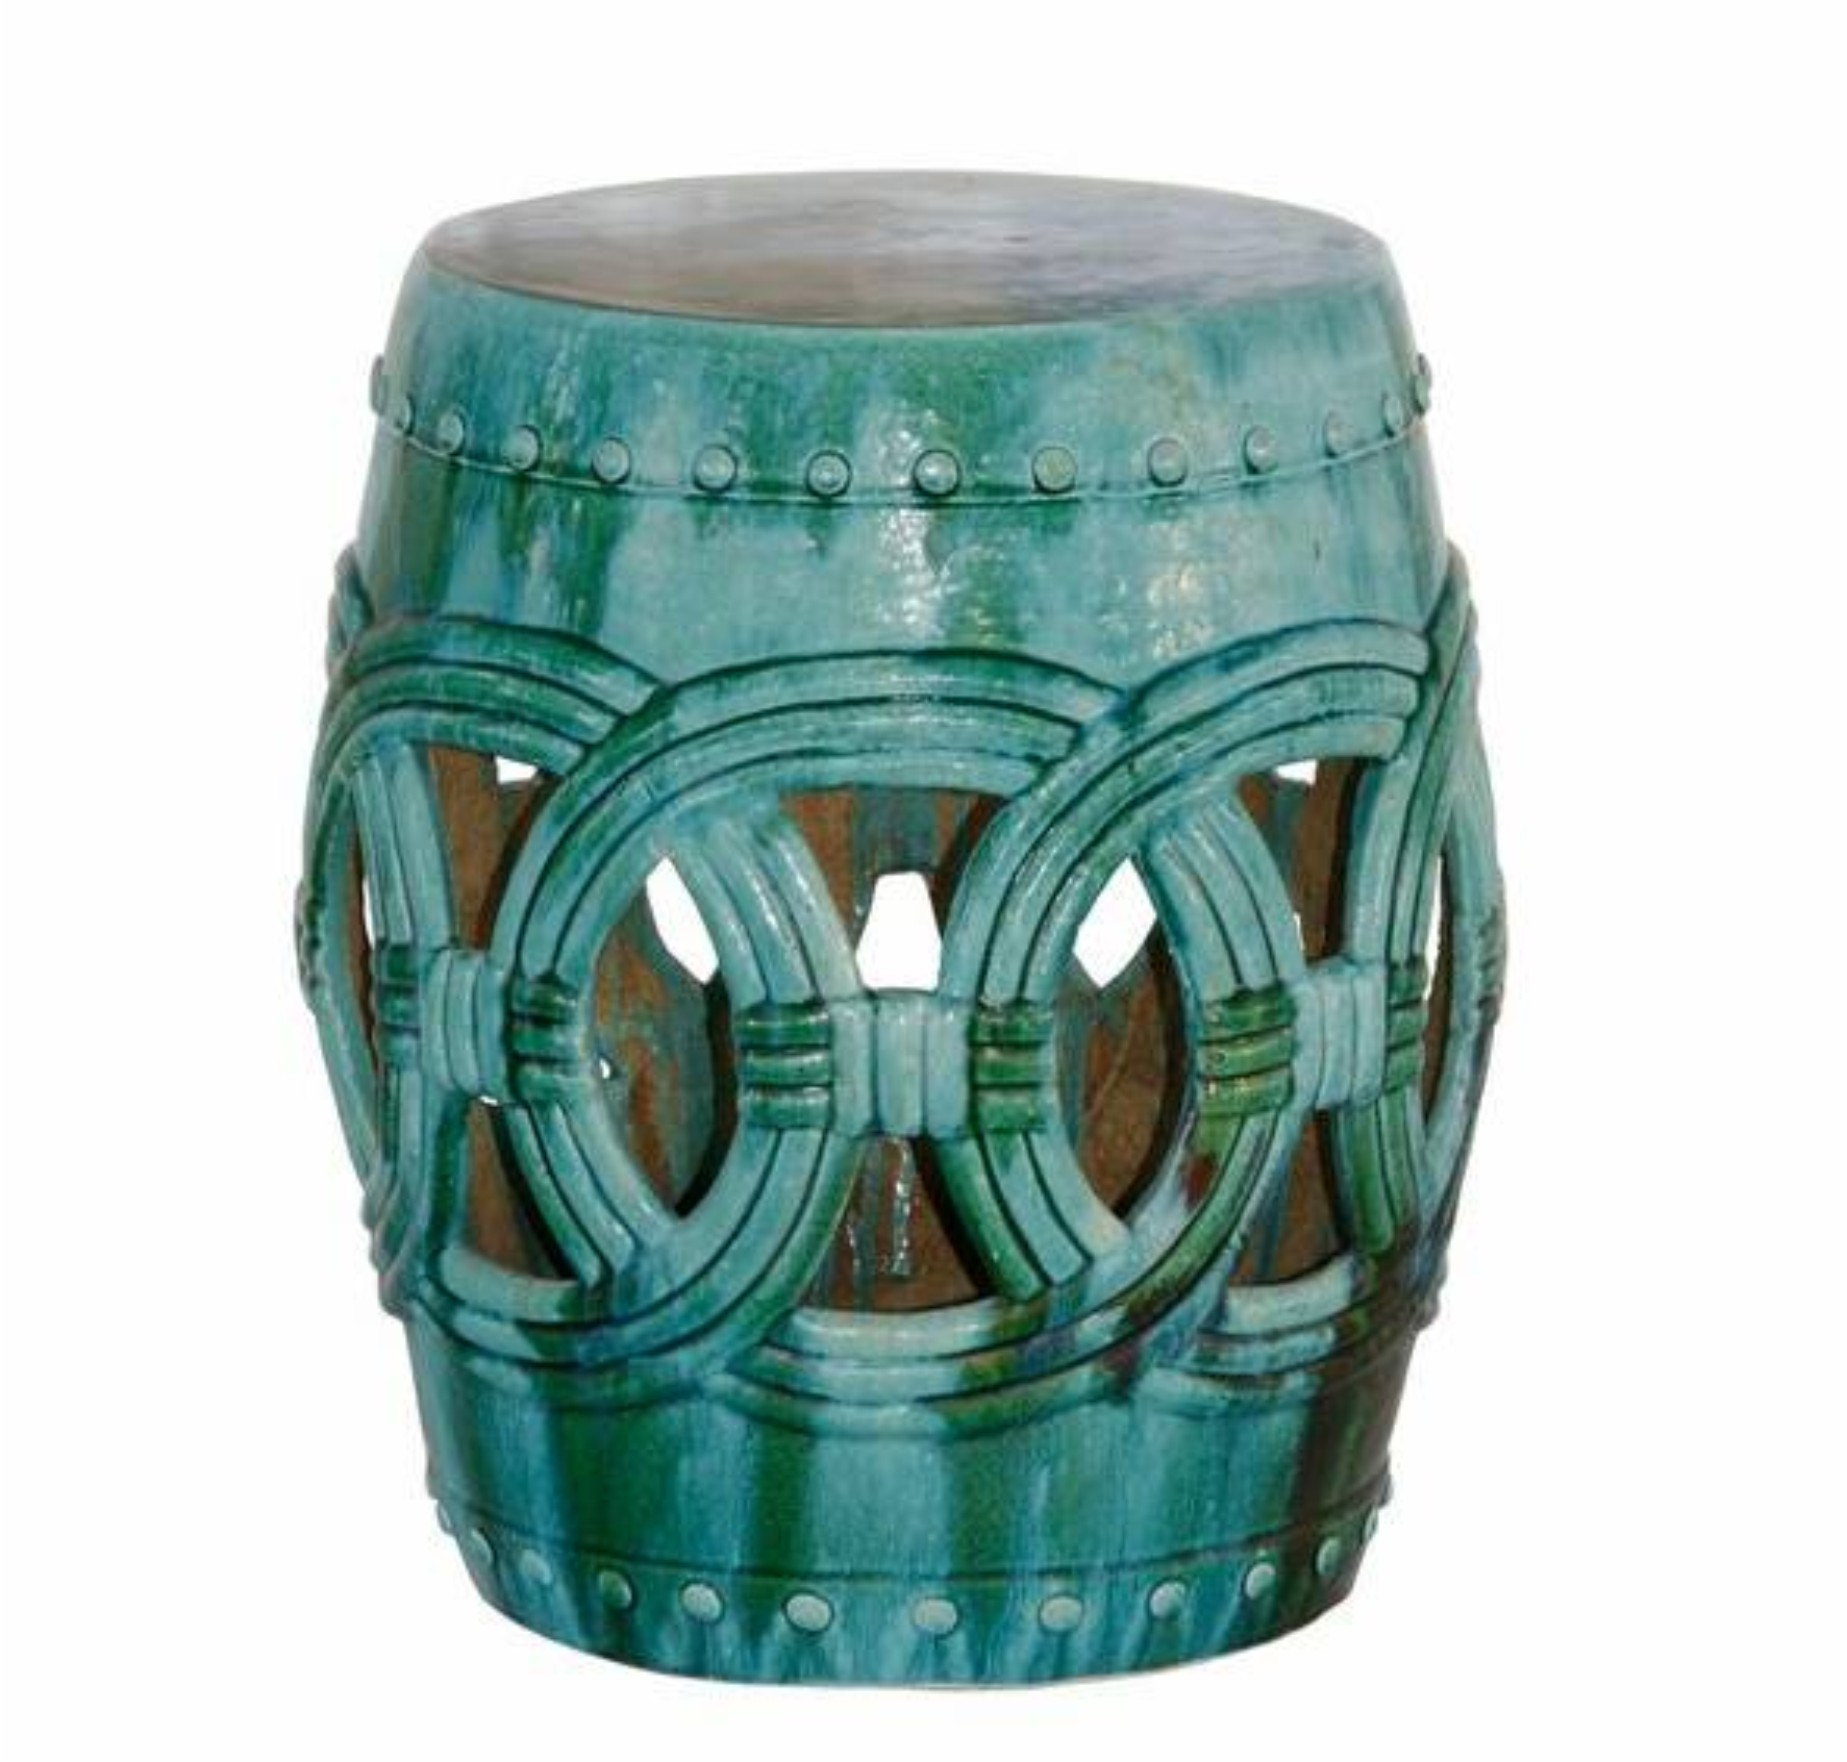 Best garden stool for decorating interior ideas with ceramic garden stool